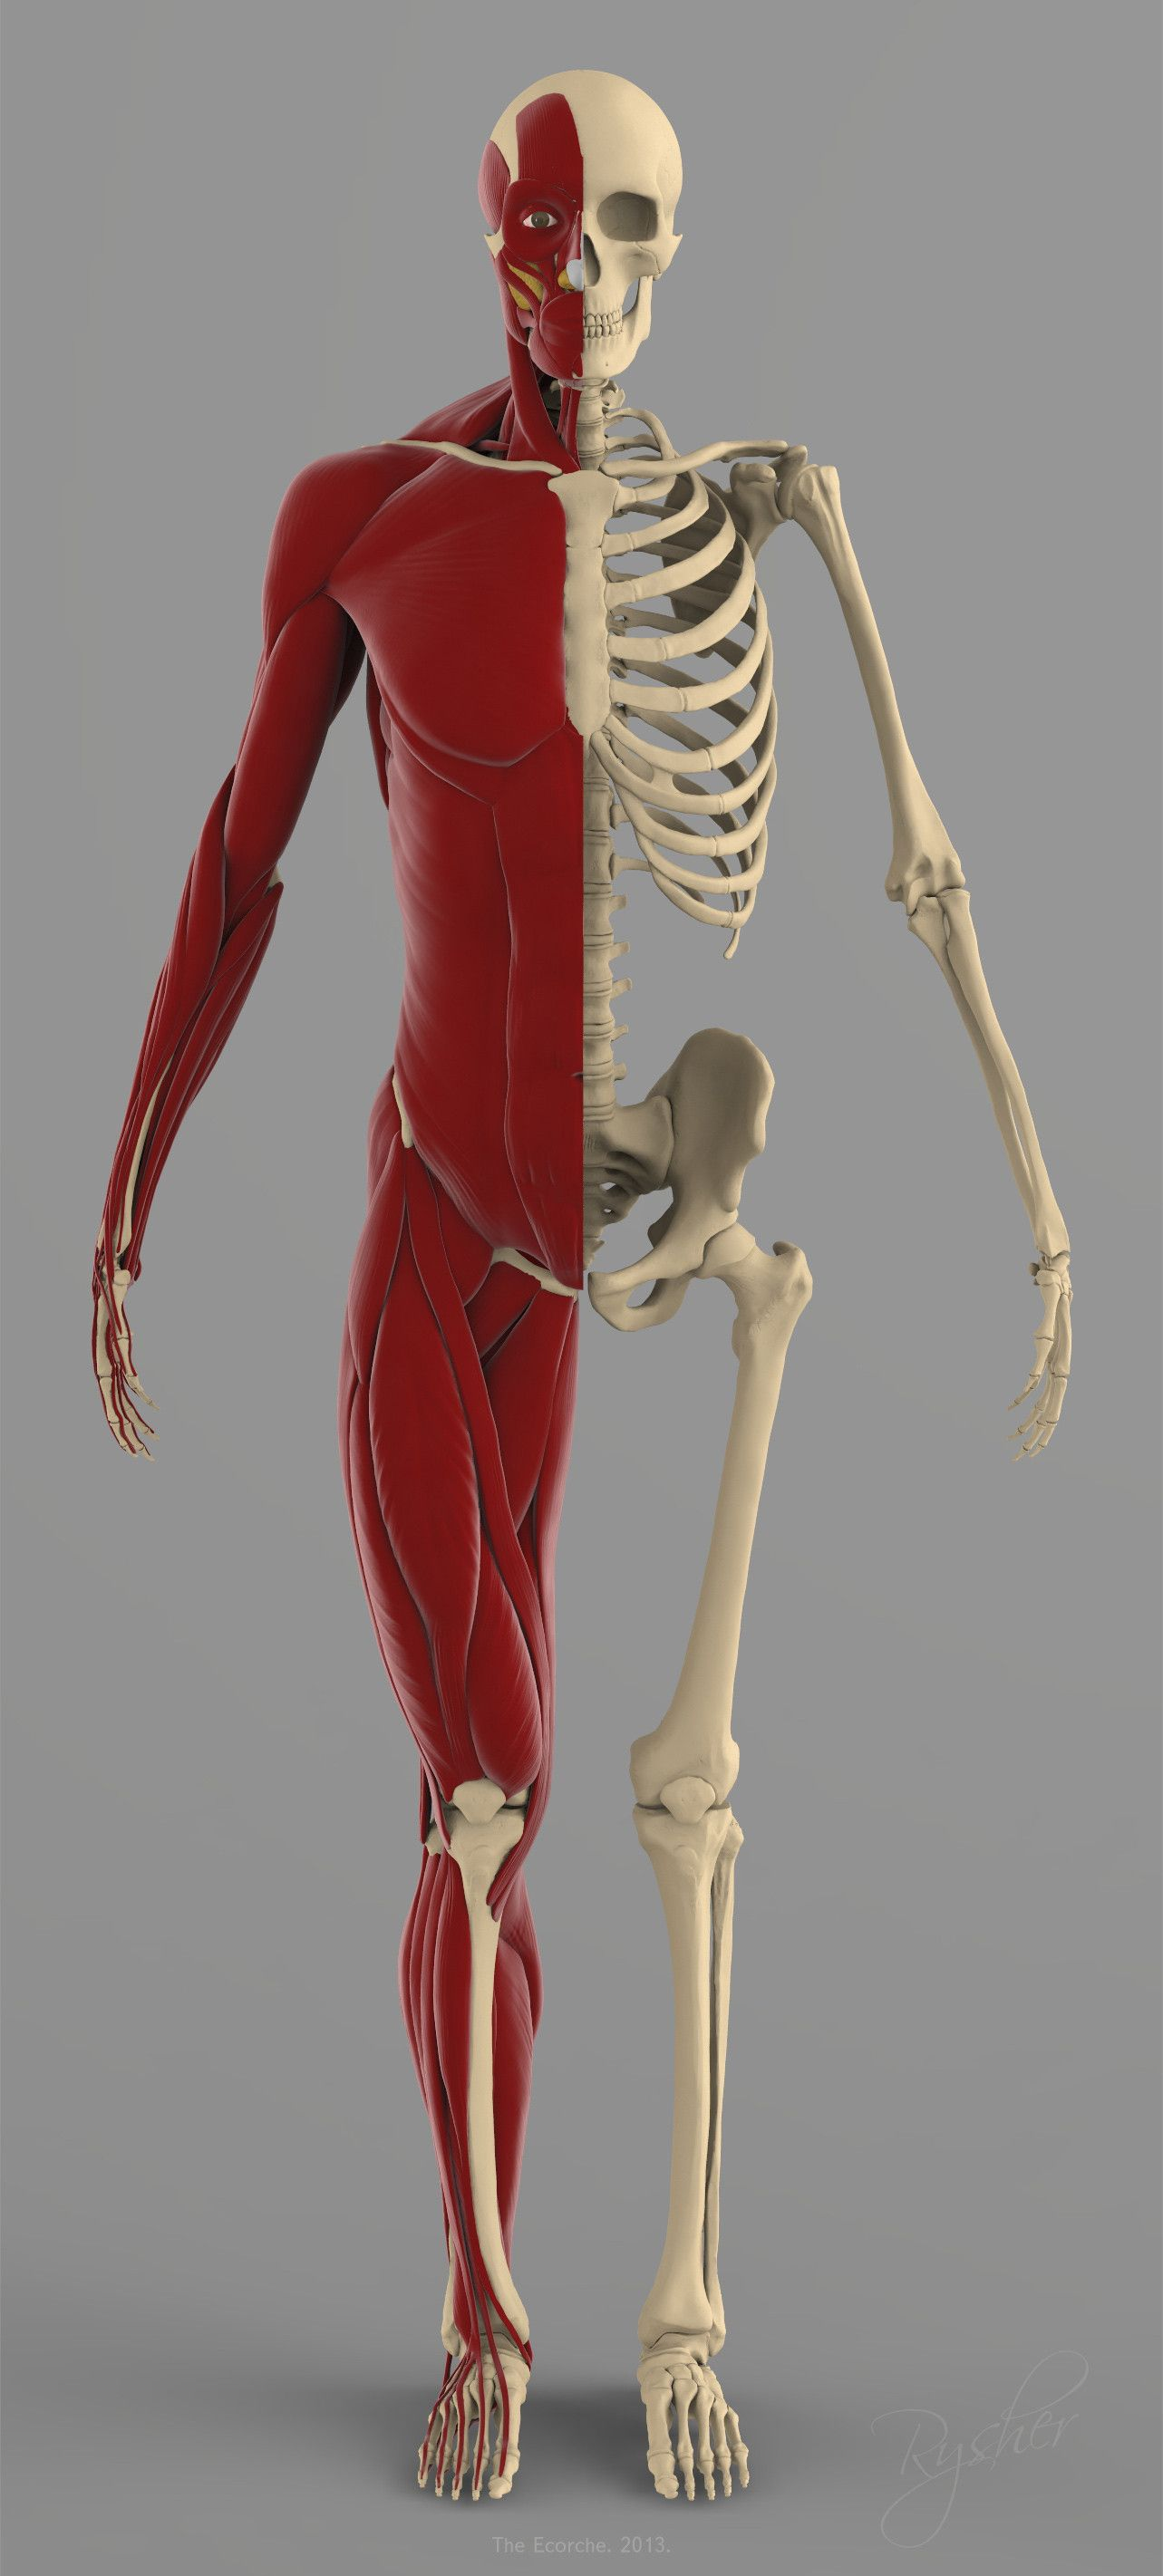 precise human skeleton muscles 3d model | ideas para dibujar ...